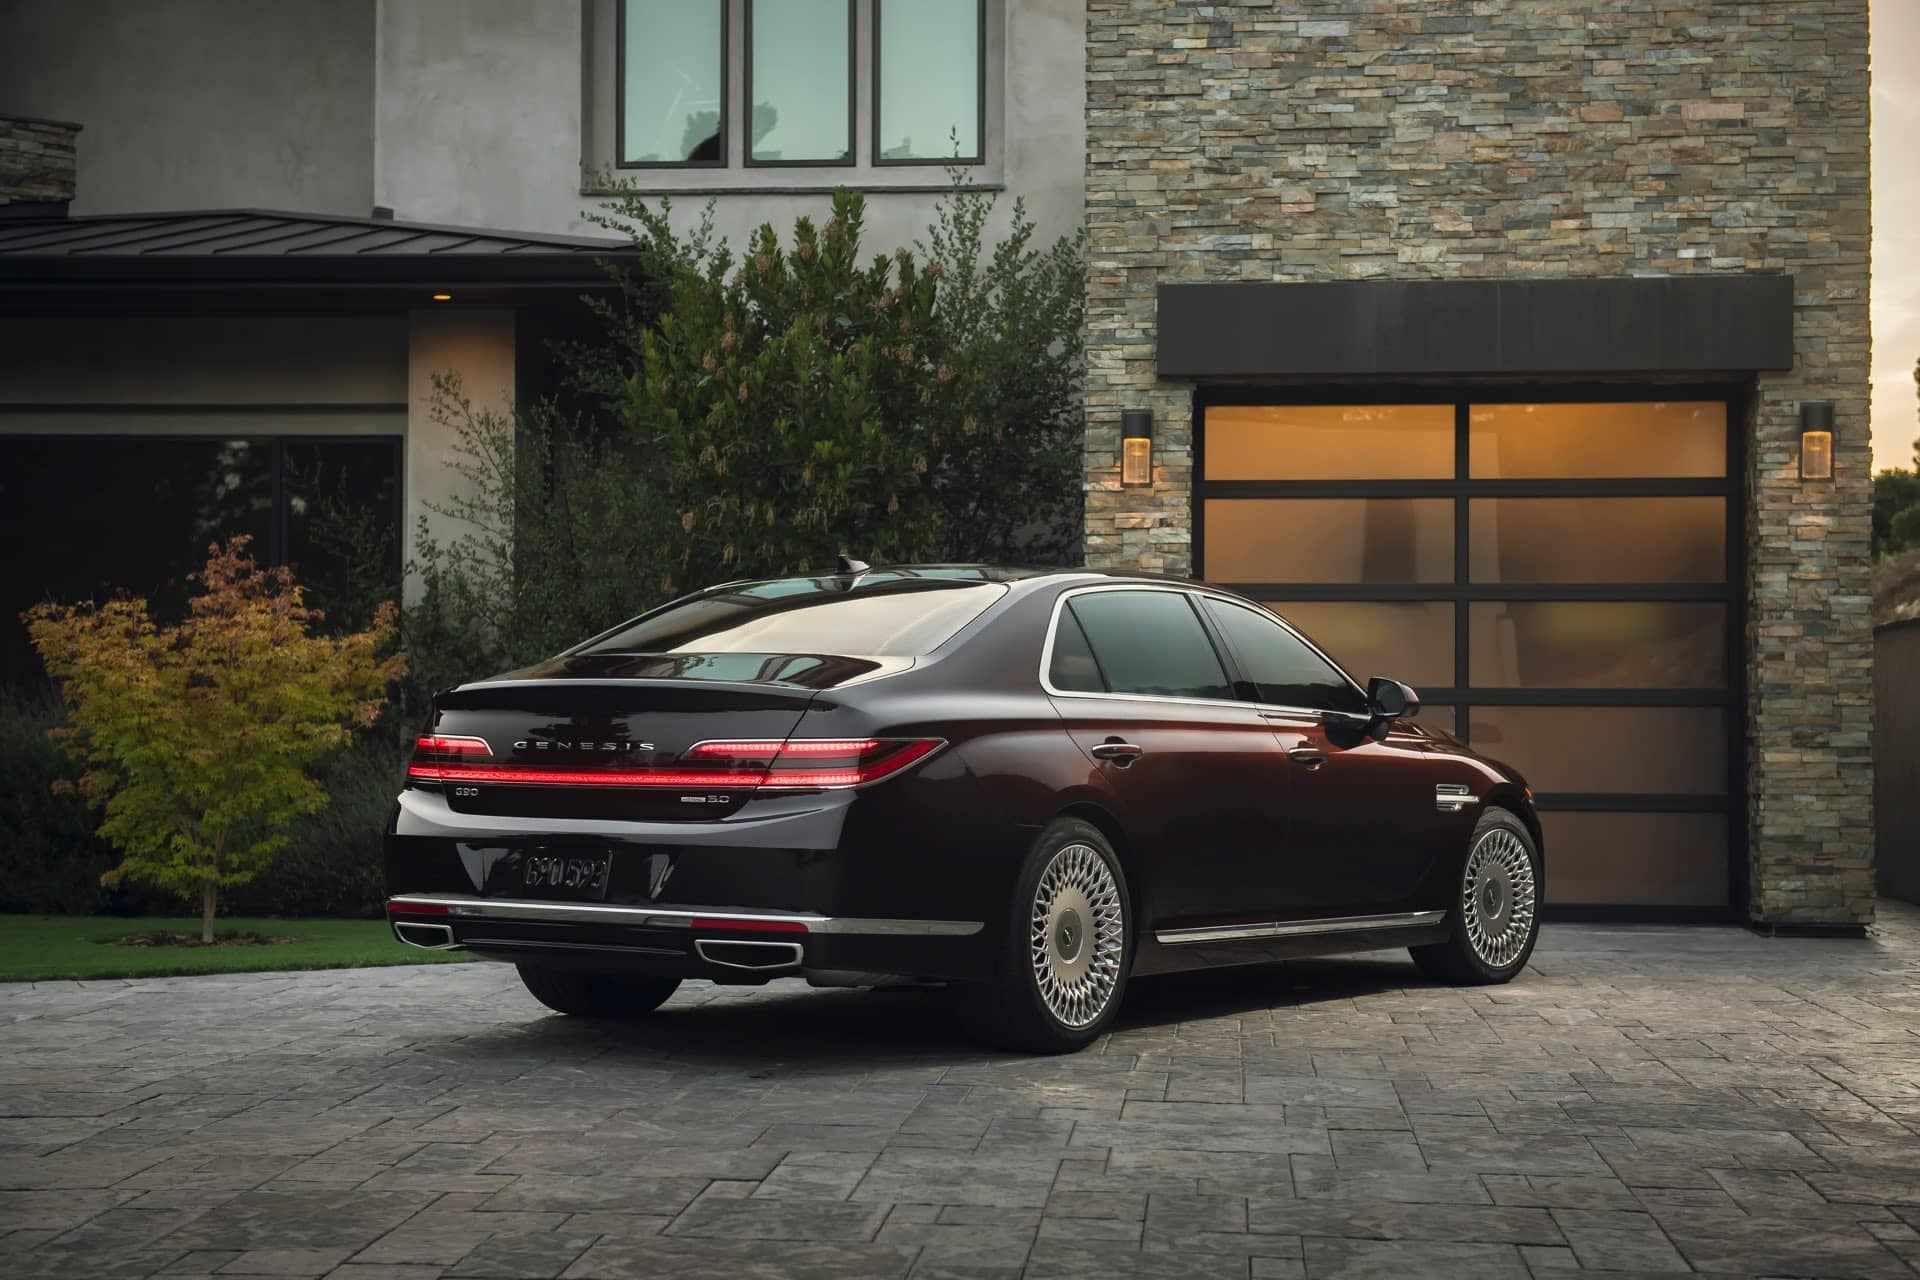 Genesis G90 parked on bricked driveway in front of modern home